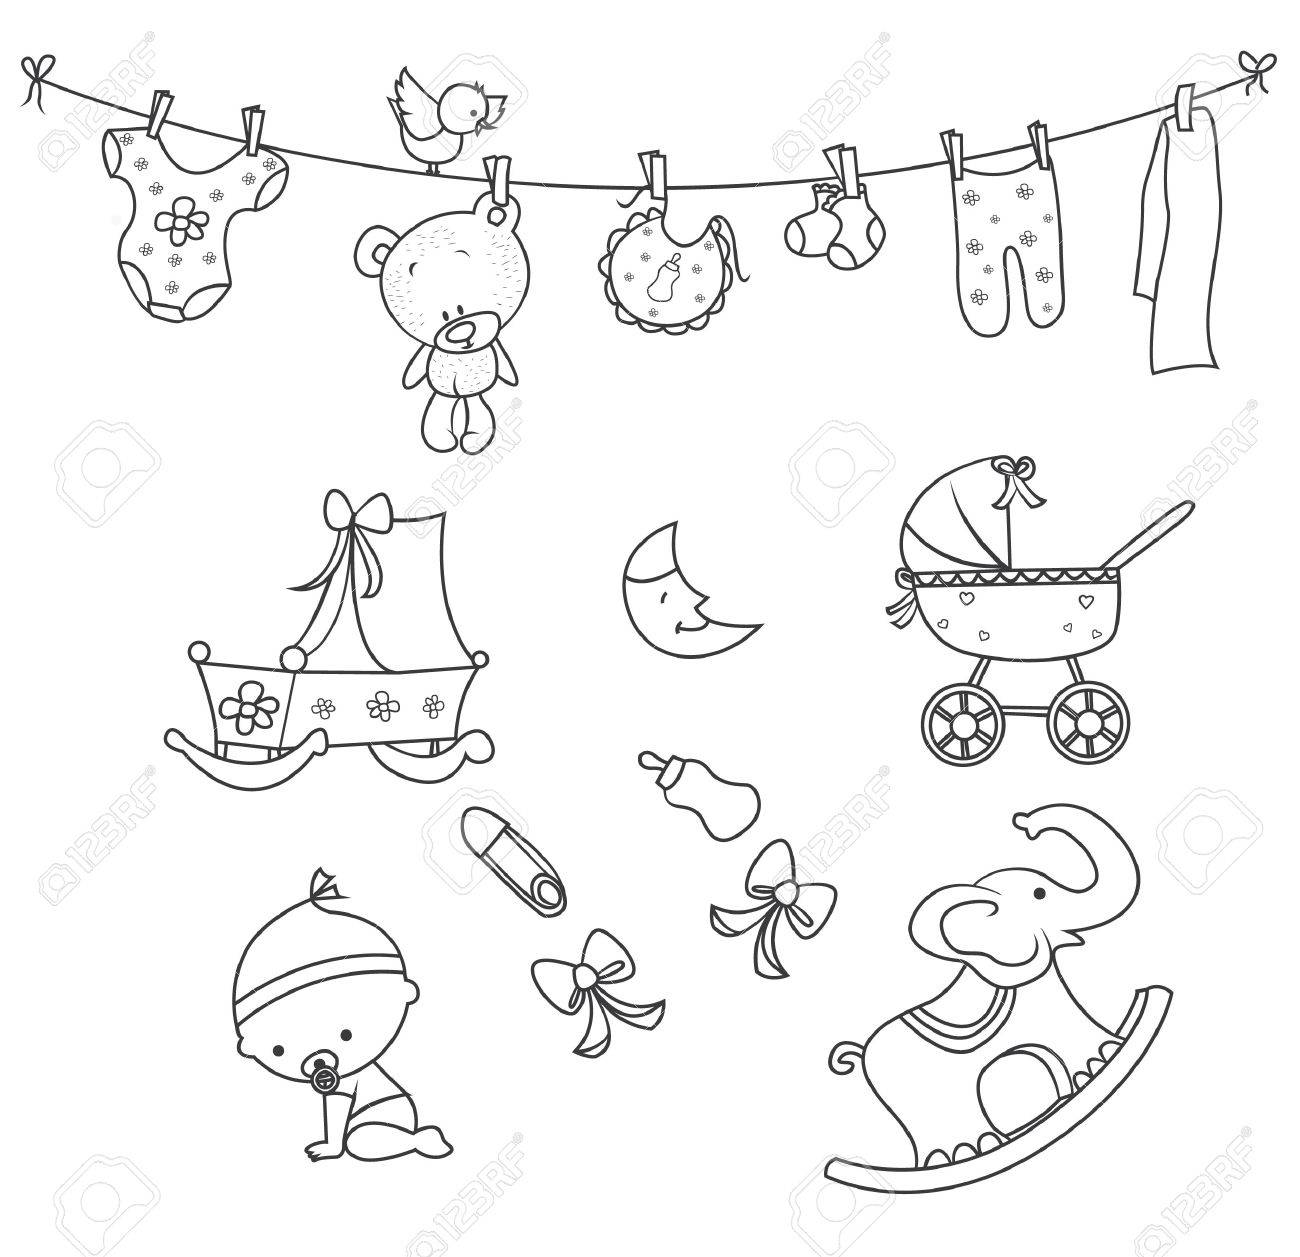 1300x1257 Baby Doodle Object Hand Drawn Sketch Doodle Royalty Free Cliparts